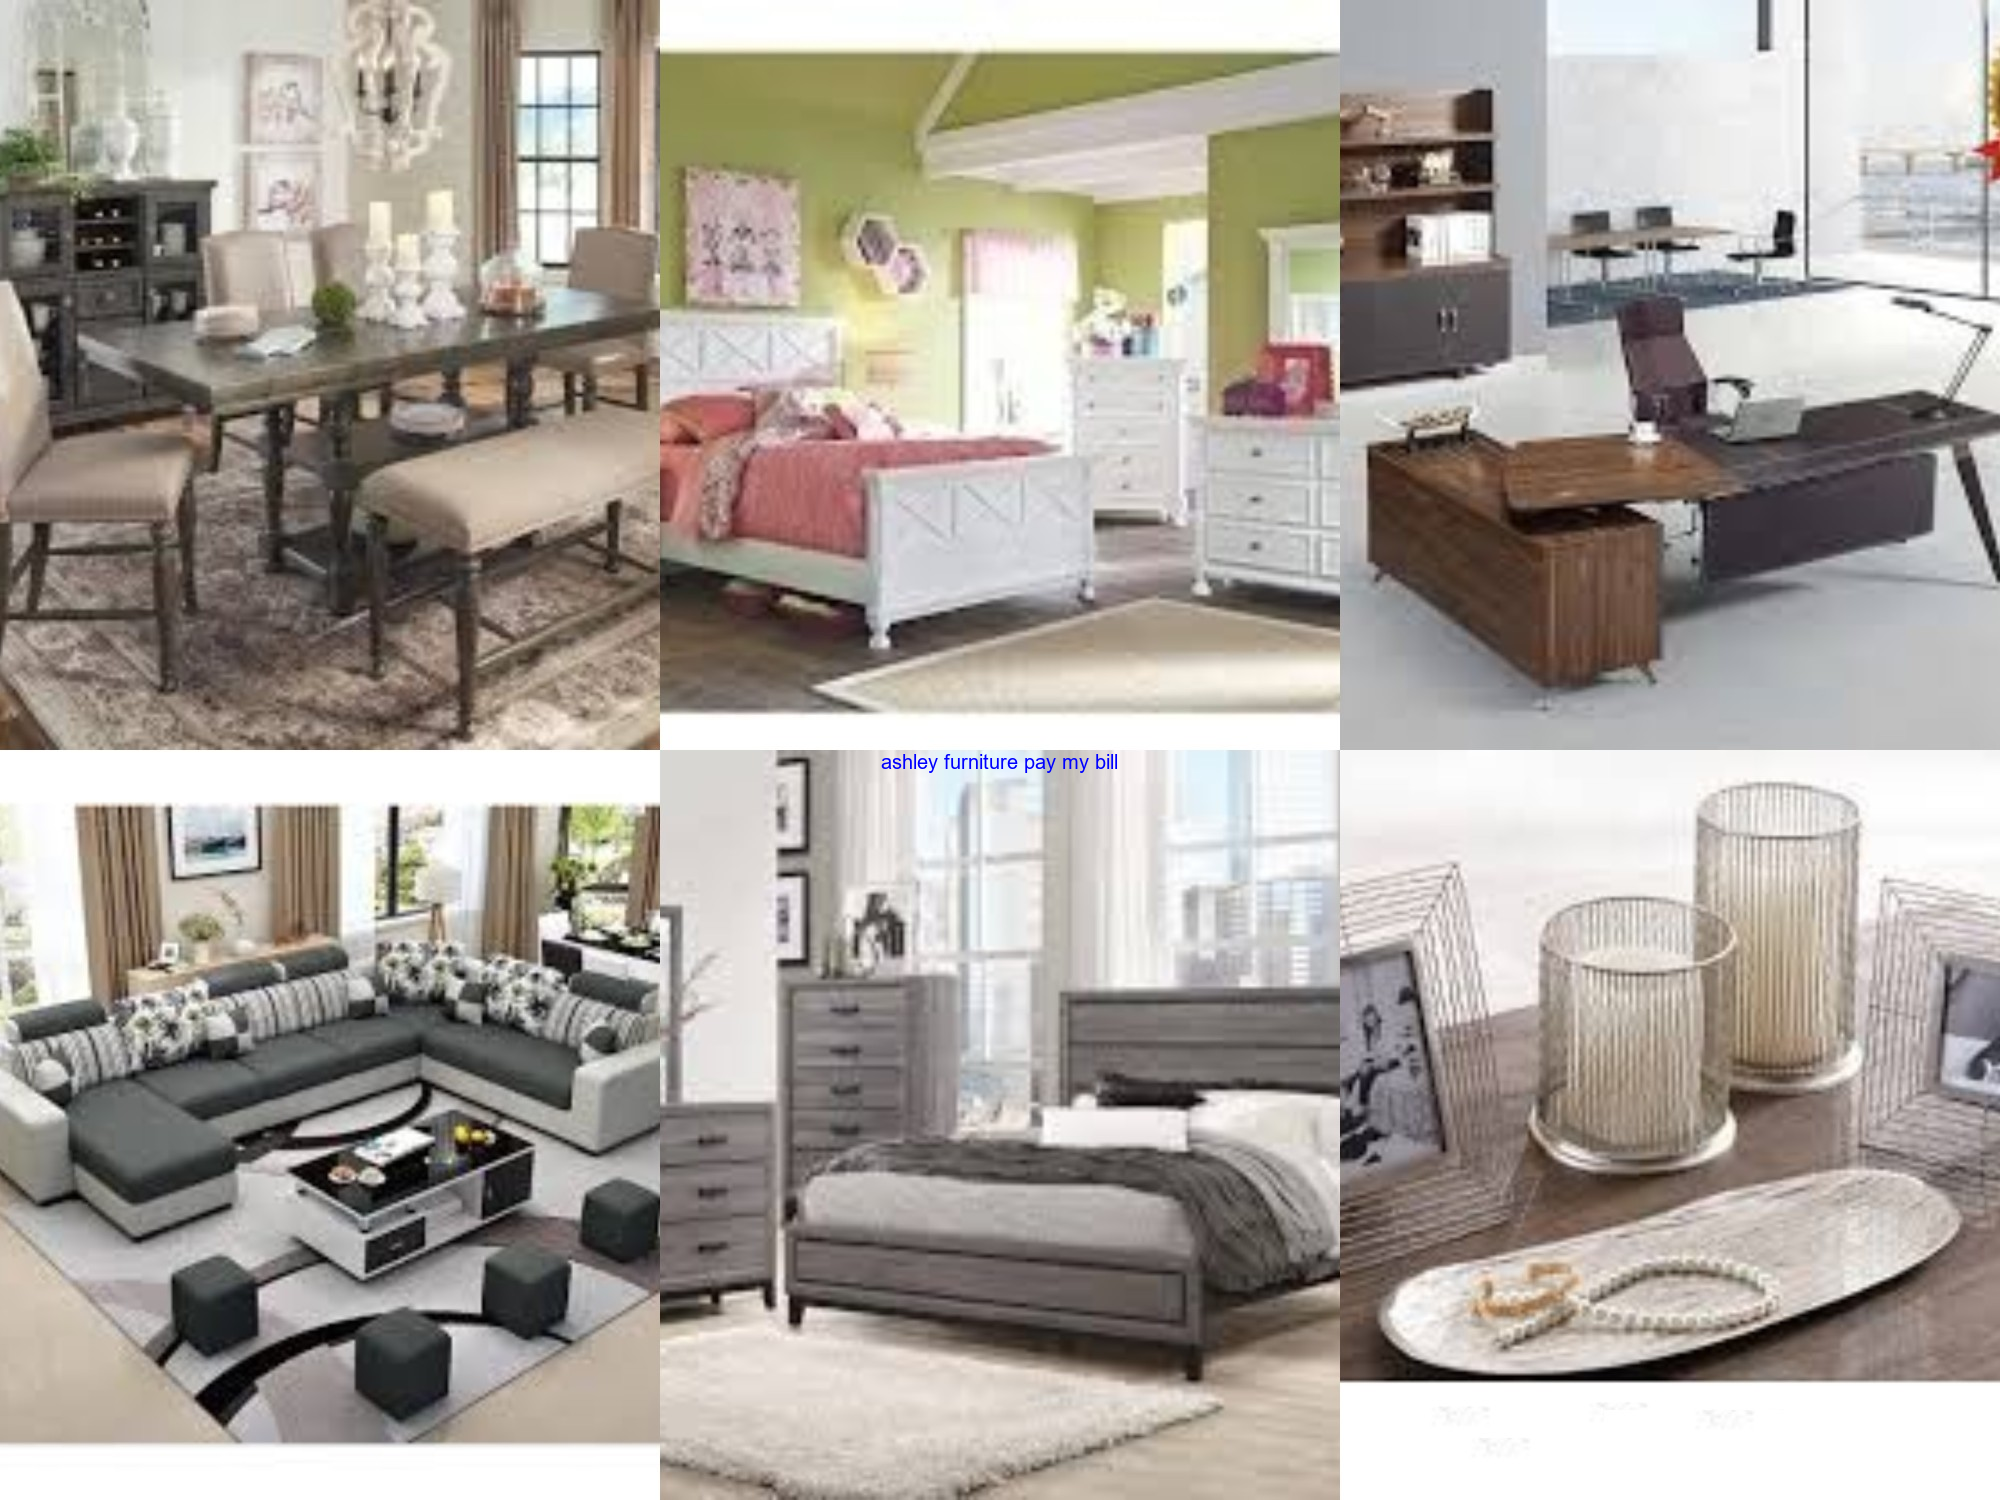 Ashley Furniture Pay My Bill Furniture Prices Ashley Furniture Bedroom Set